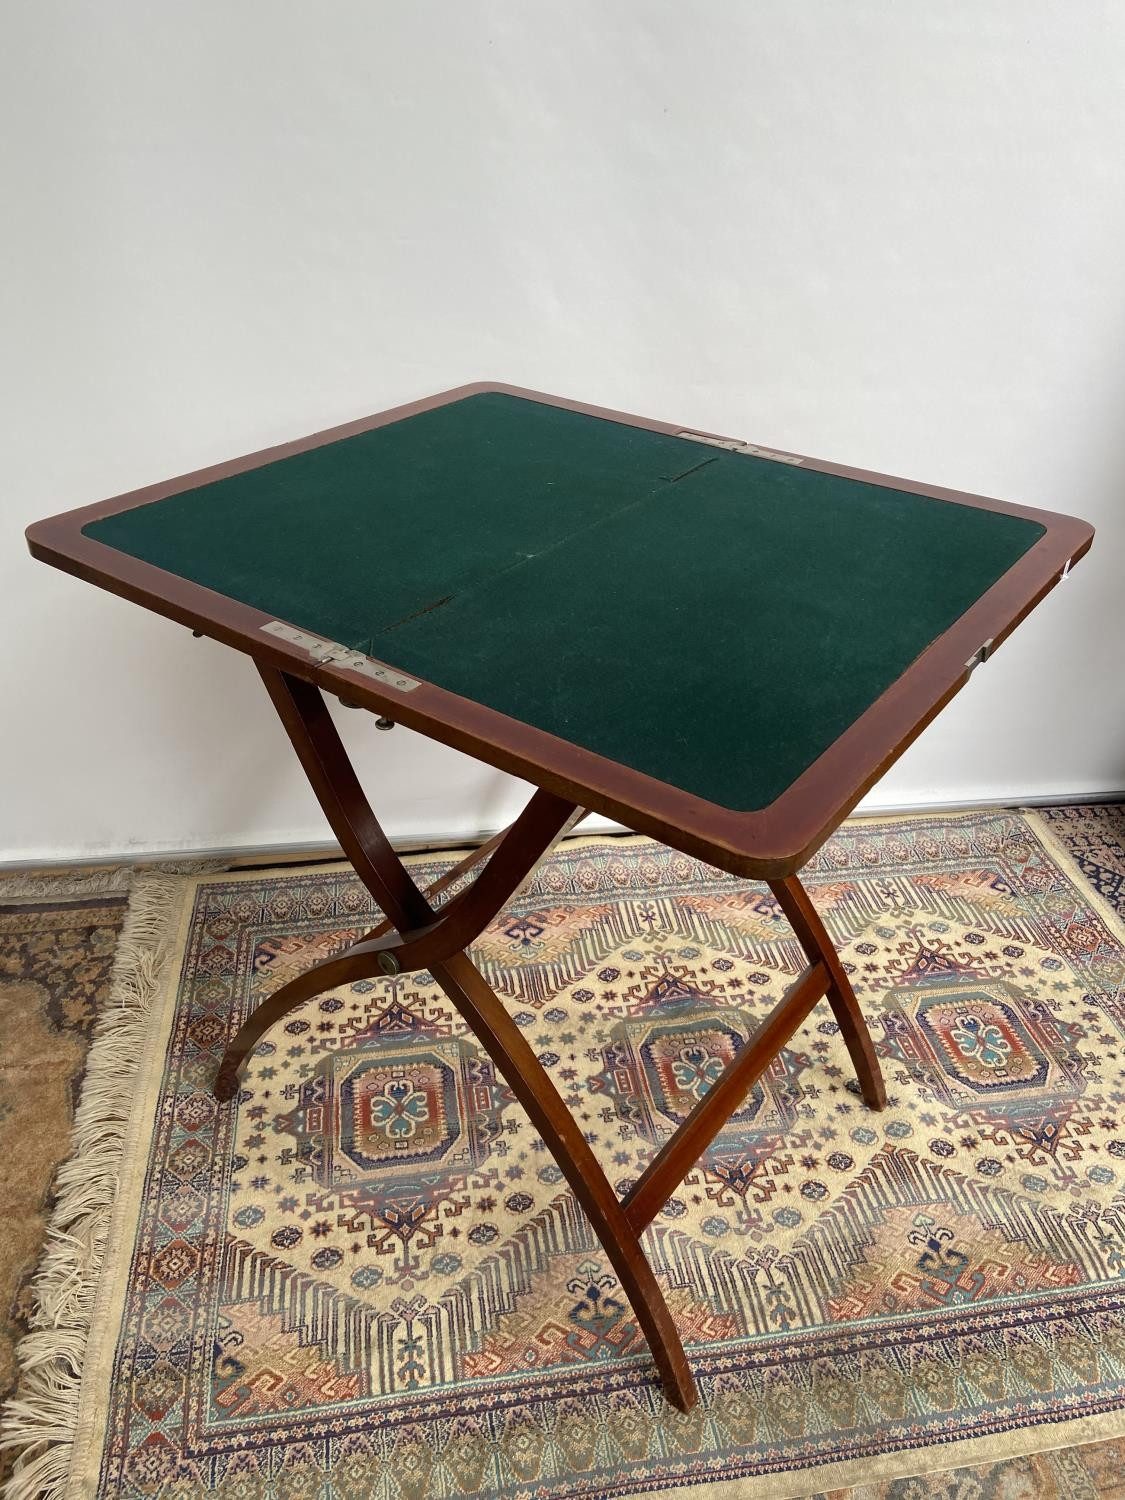 Antique Nawson Swan & Morgan folding card table/ writing table. [64cm in height, 75cm wide]